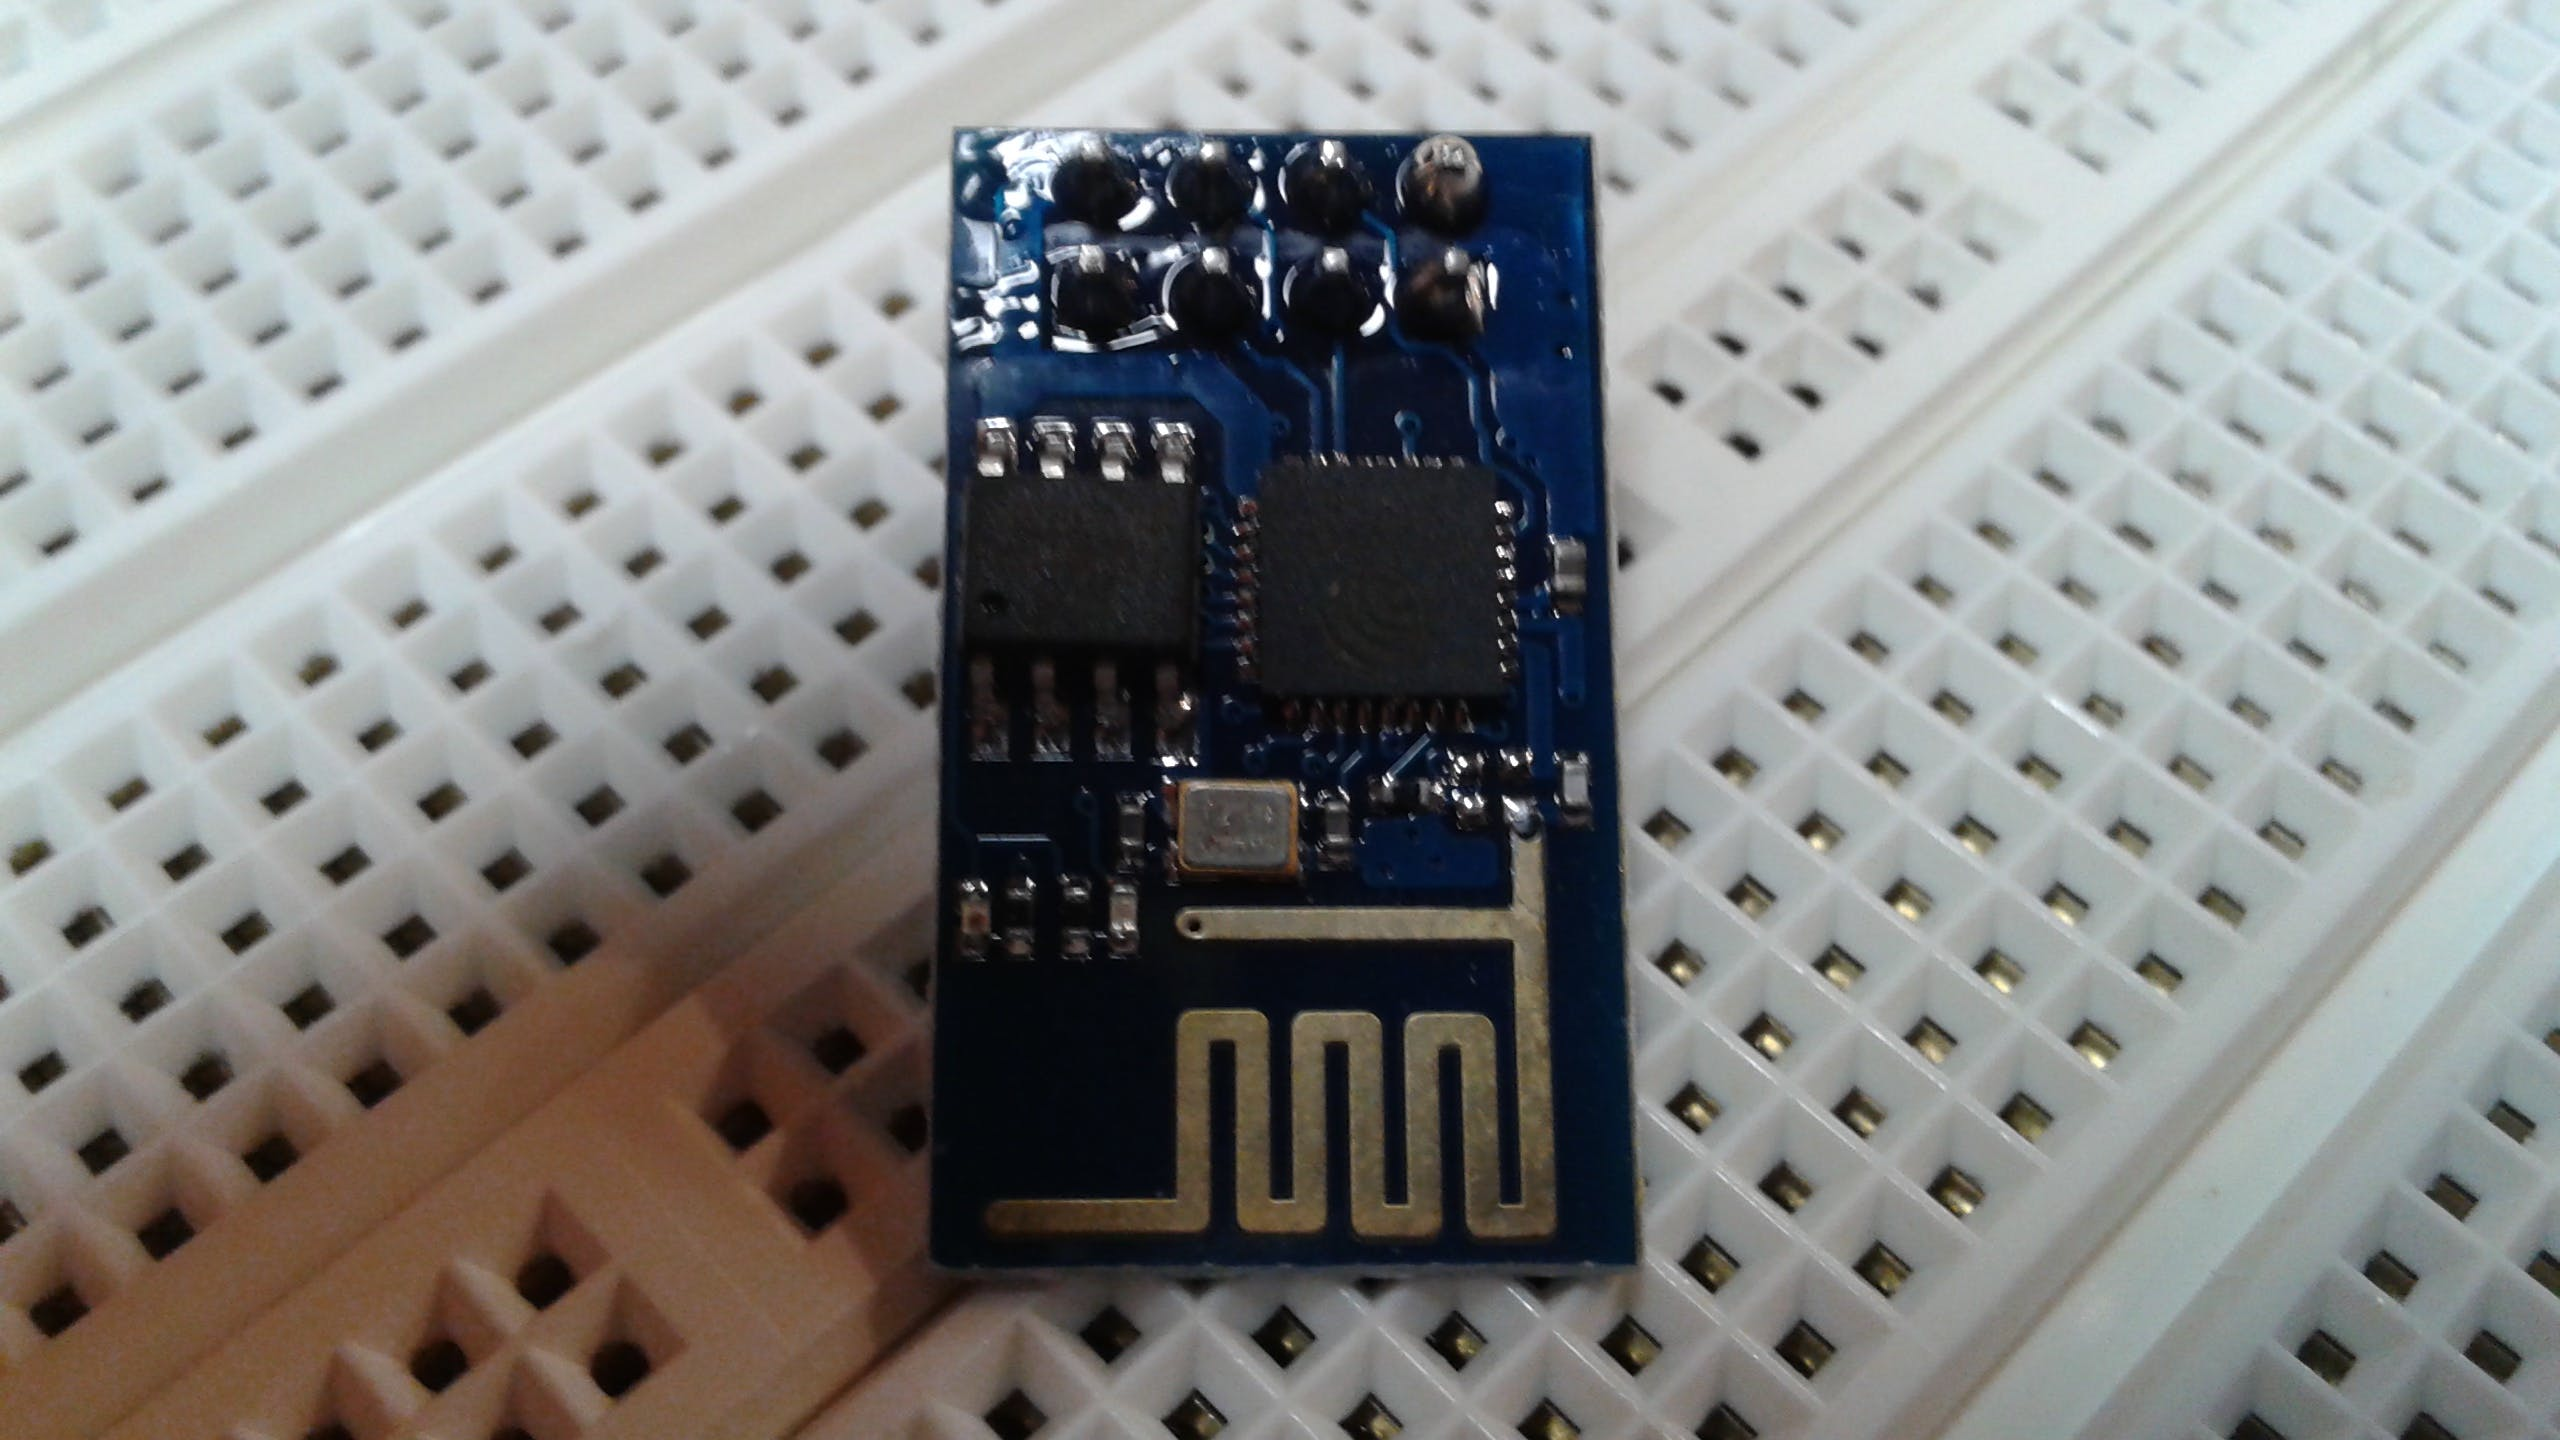 Here is the remarkable ESP8266 ready to be boxed!